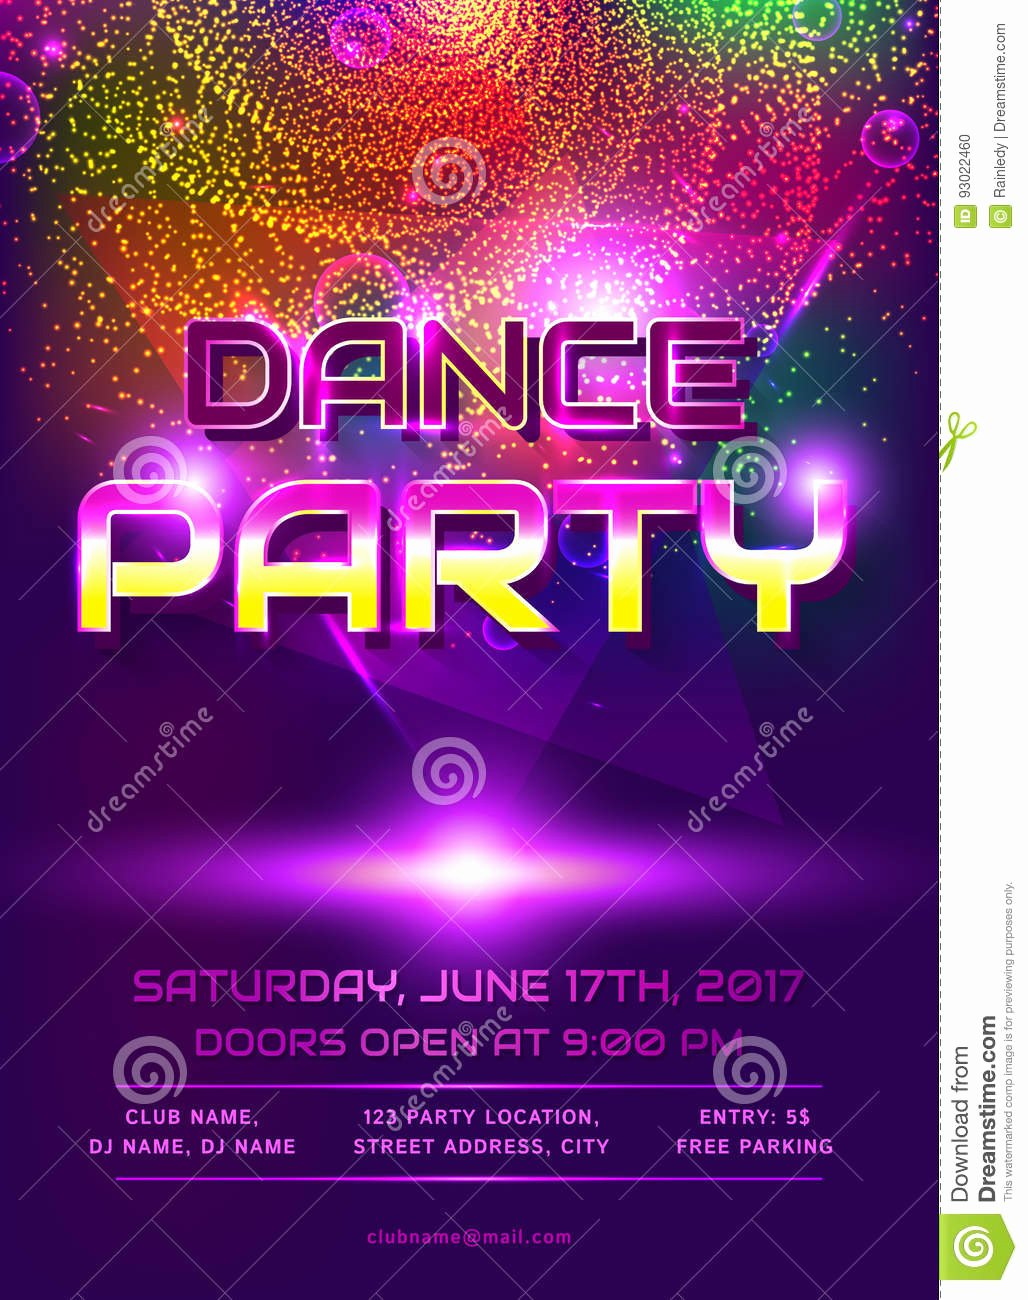 Dance Party Invitation Template Beautiful Dance Party Invitation Stock Vector Illustration Of